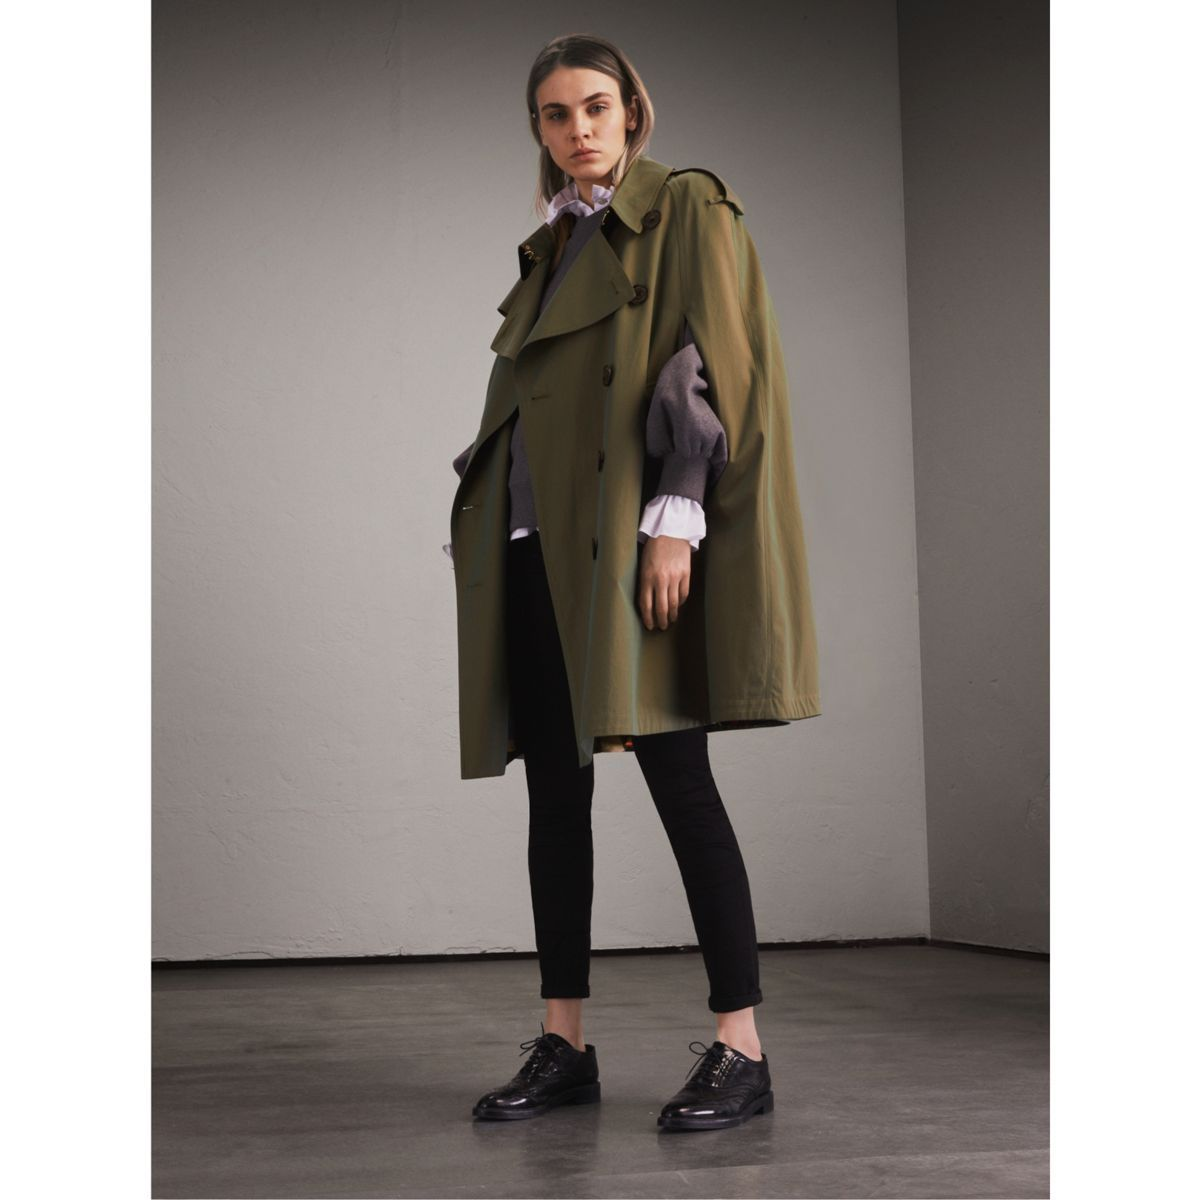 Burberry Tropical Gabardine Cape with Check Detail, Size: 02, Green